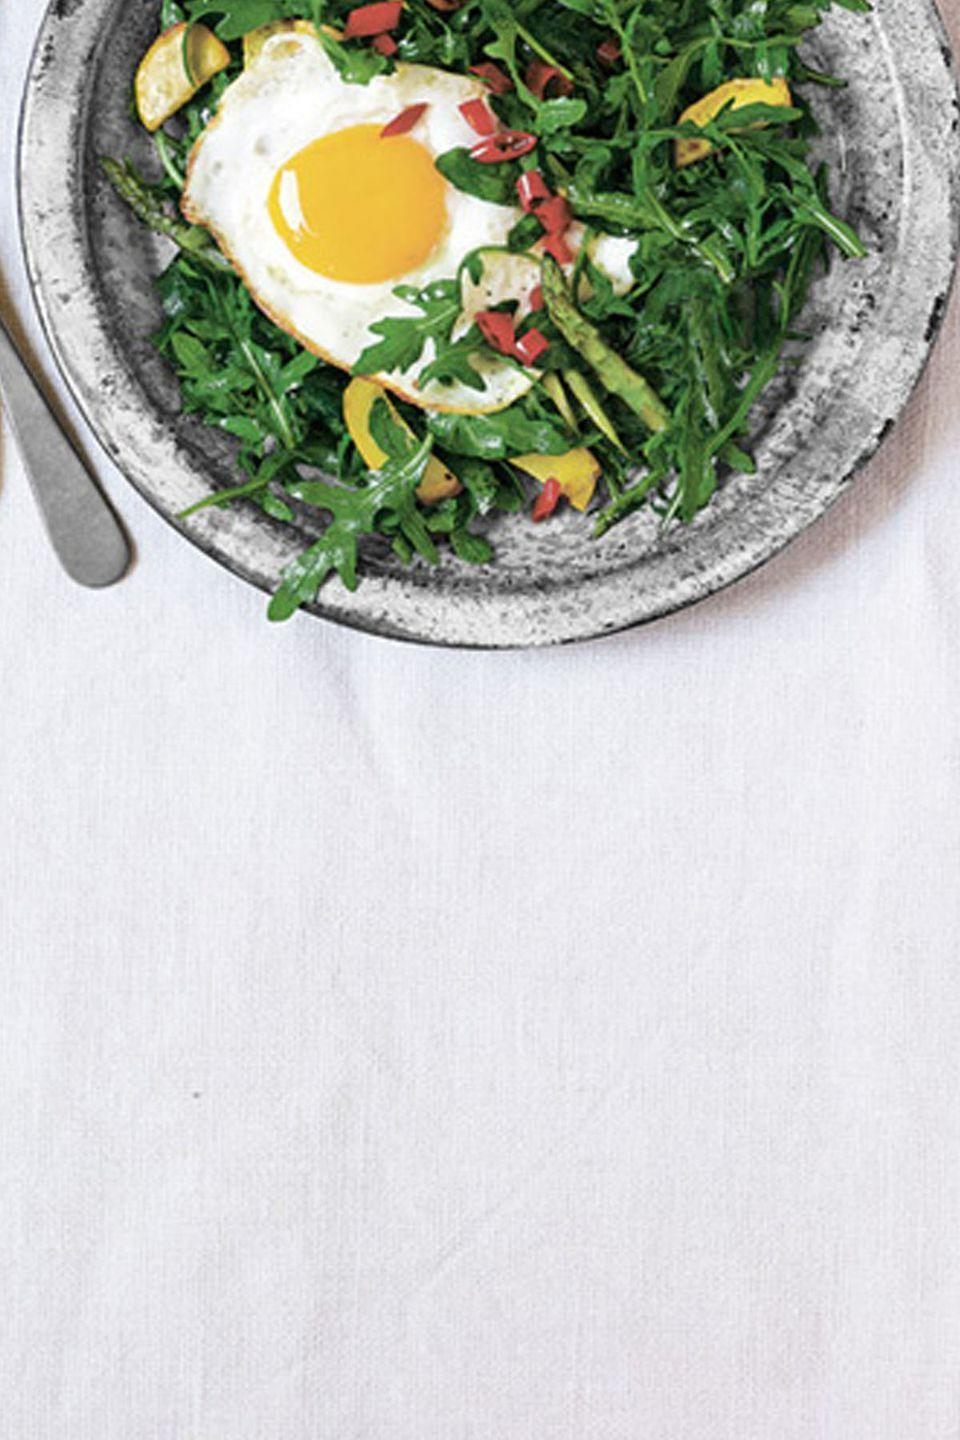 "<p>This vibrant mix of vegetables - topped with hot pickled peppers and a hearty egg - proves a well-rounded option for brunch or dinner. <br></p><p><a href=""https://www.womansday.com/food-recipes/food-drinks/recipes/a38030/wild-arugula-summer-squah-asparagus-fried-egg-recipe-clv0612/"" rel=""nofollow noopener"" target=""_blank"" data-ylk=""slk:Get the recipe for Wild Arugula with Summer Squash, Asparagus, and a Fried Egg."" class=""link rapid-noclick-resp""><em>Get the recipe for Wild Arugula with Summer Squash, Asparagus, and a Fried Egg.</em></a></p>"